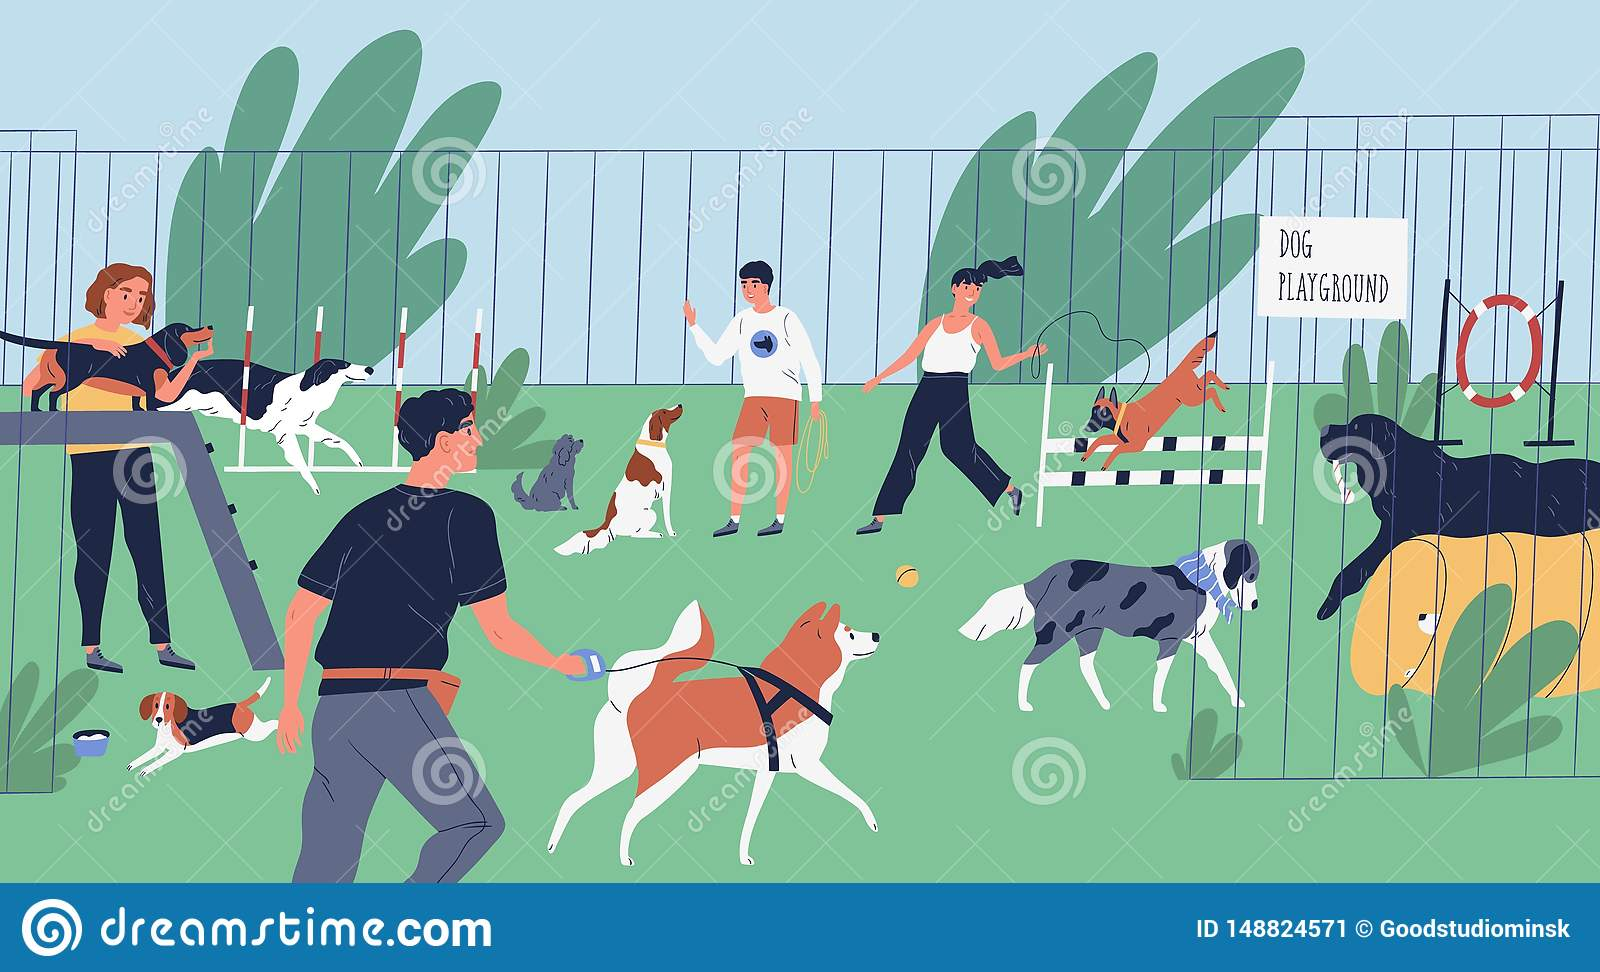 Funny people playing with dogs at playground, yard or park. Happy men and women training domestic animals outdoors